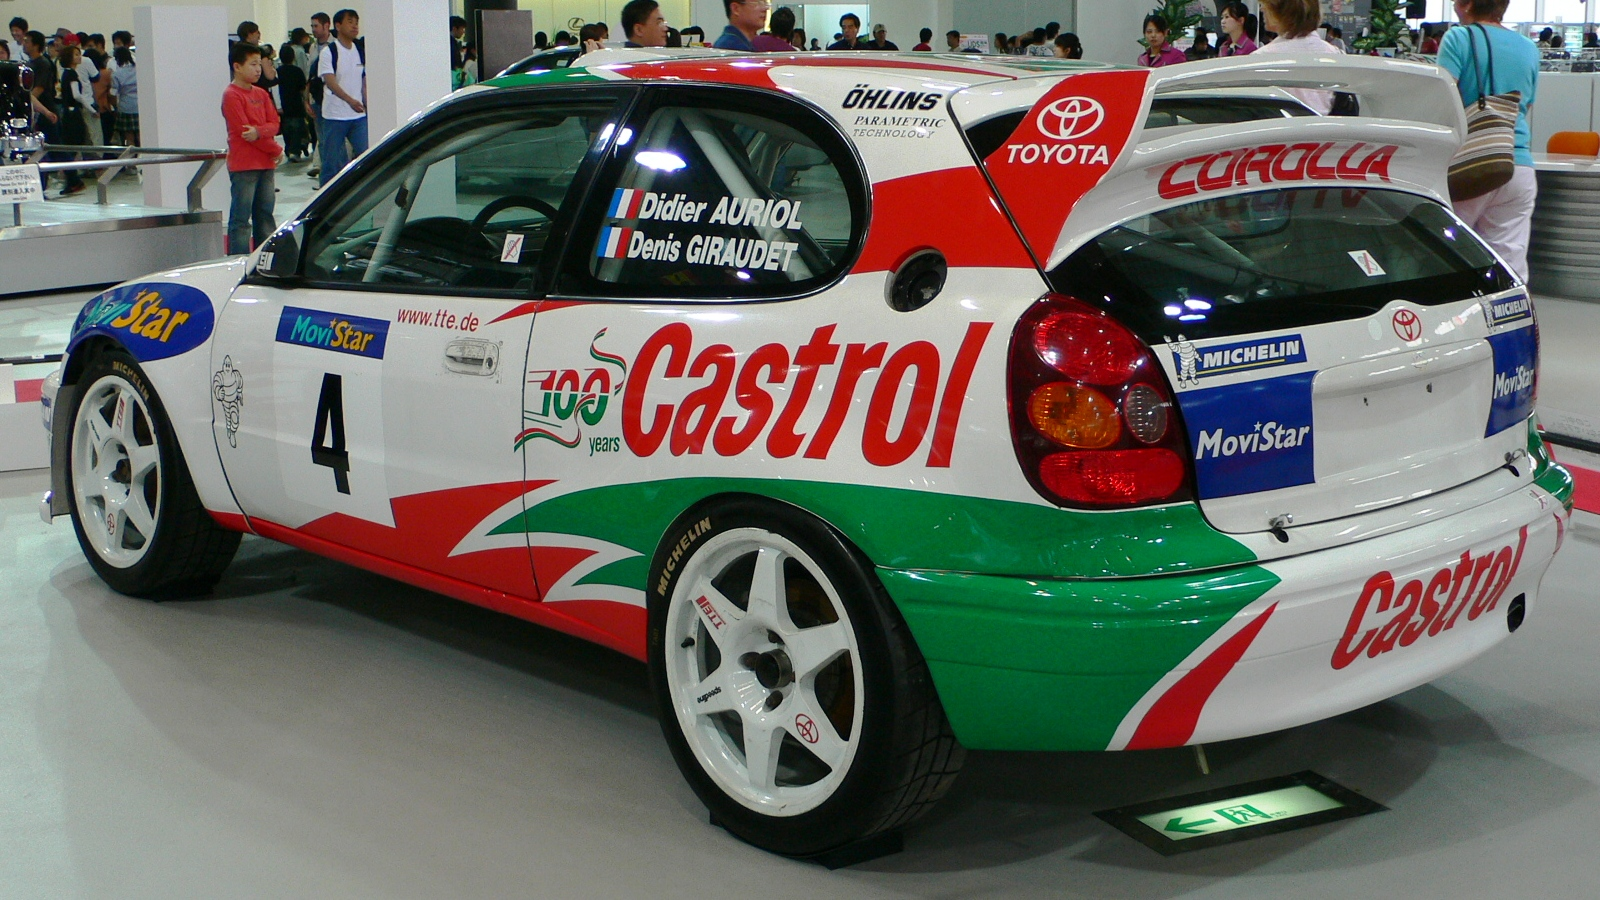 Toyota corolla wrc (257 comments) Views 21132 Rating 22